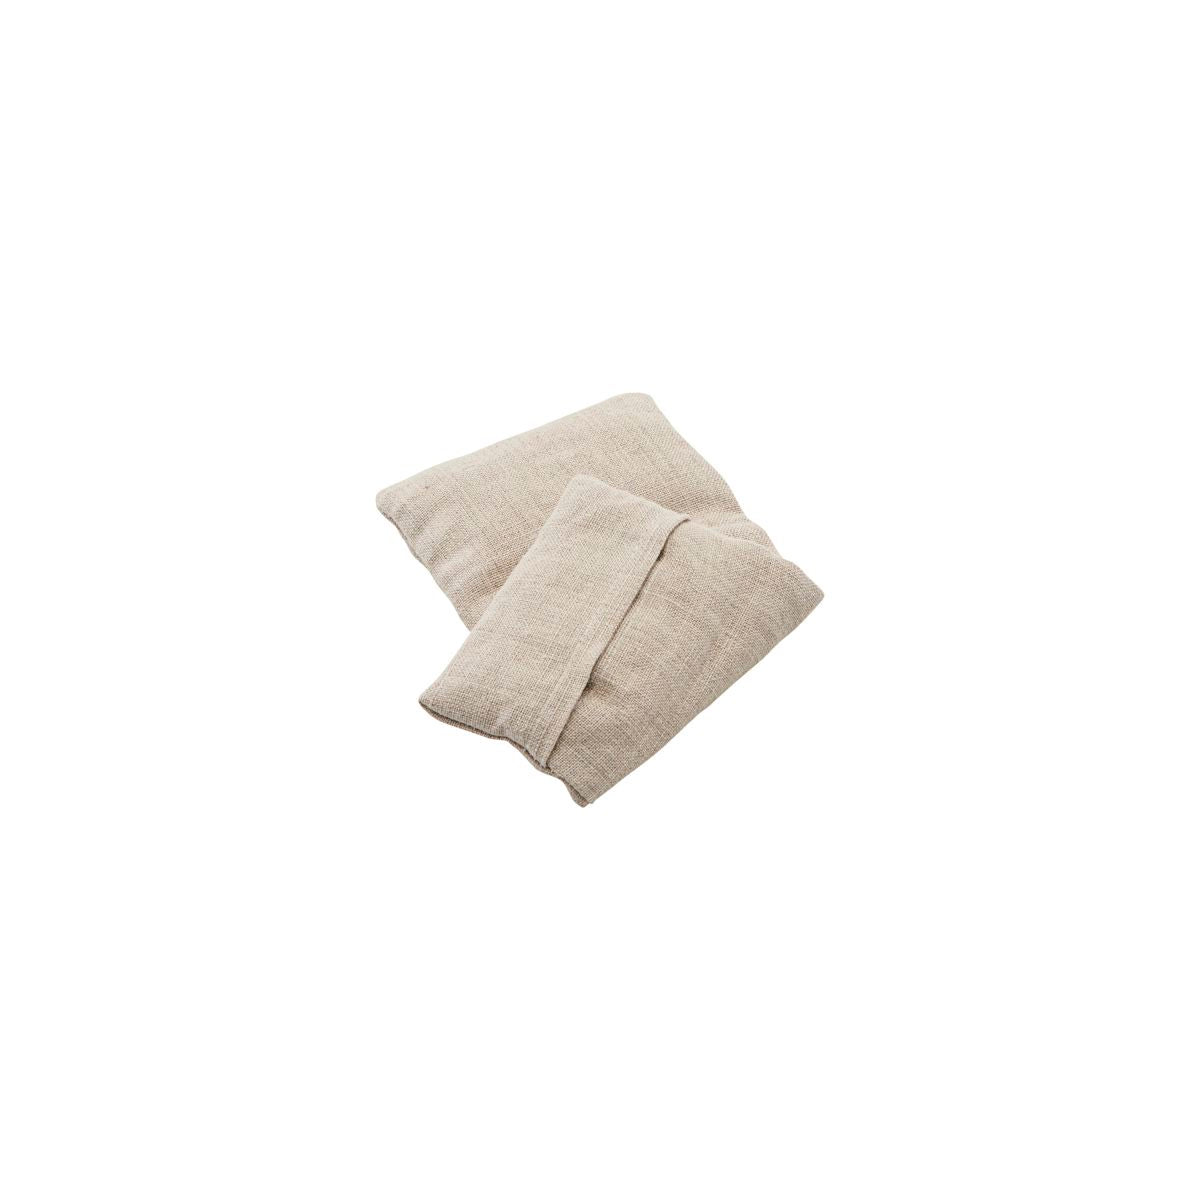 Gray Therapy Eye Pillow - Beige